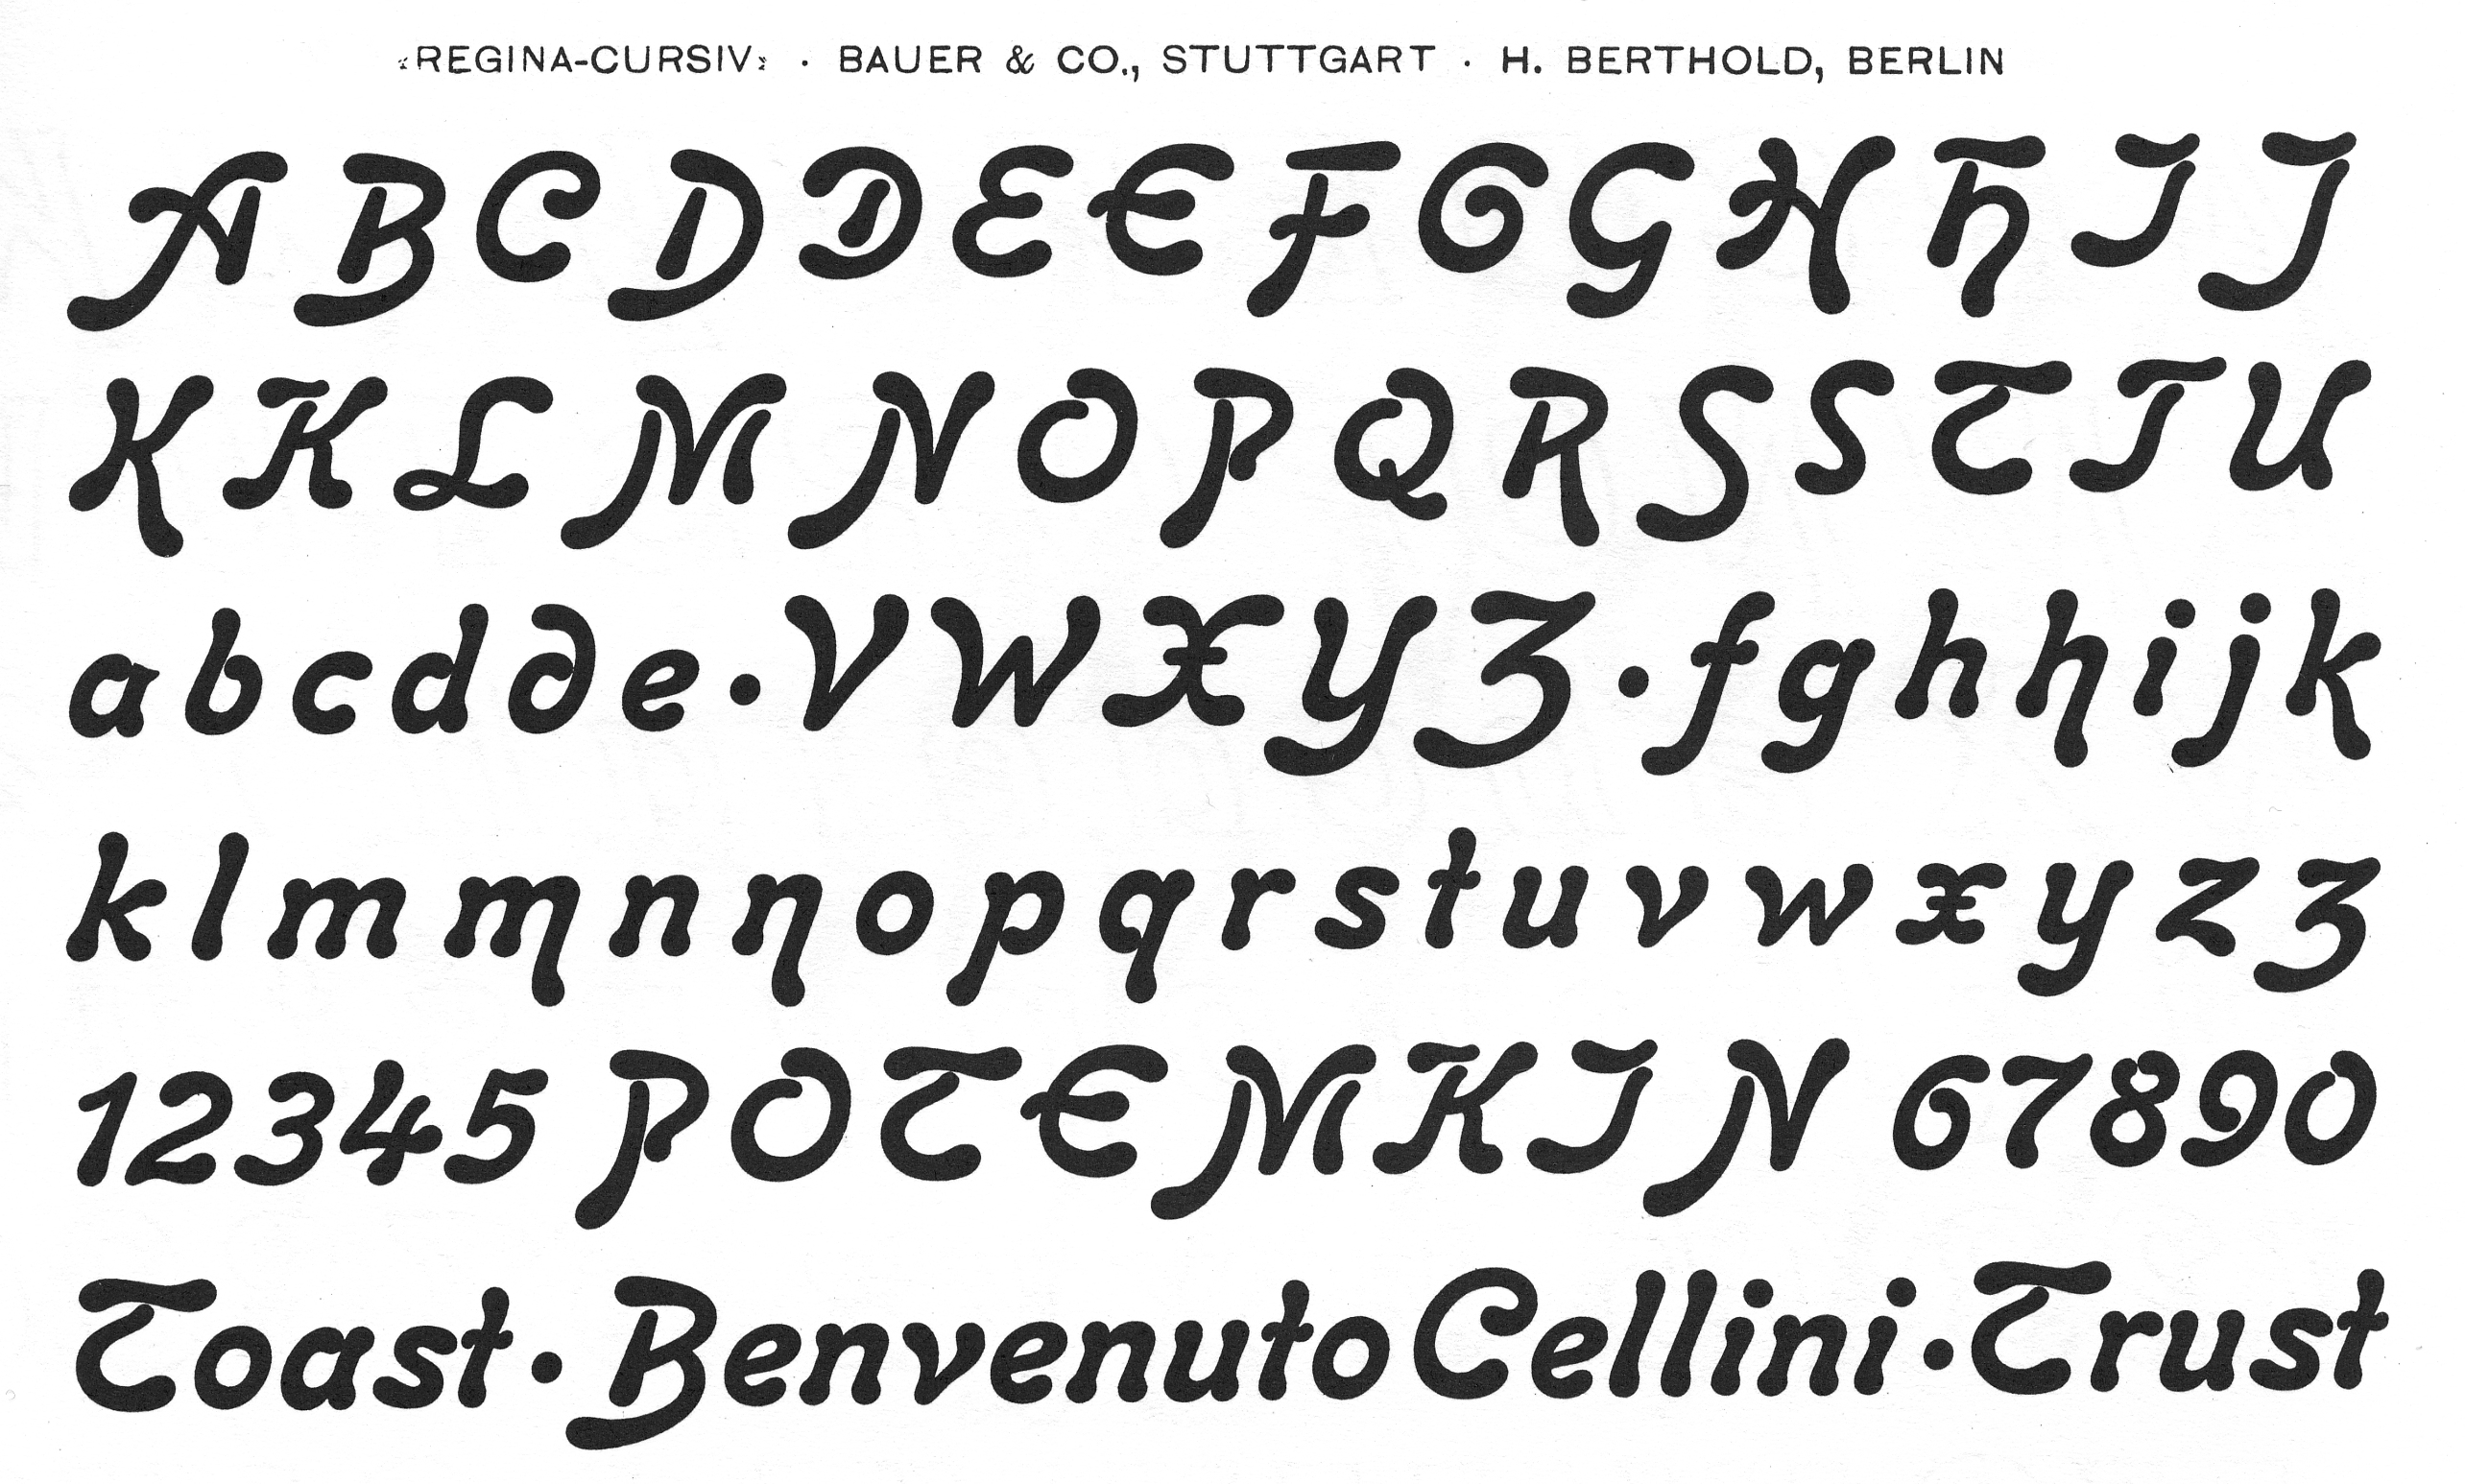 Glyph set of Regina-Cursiv